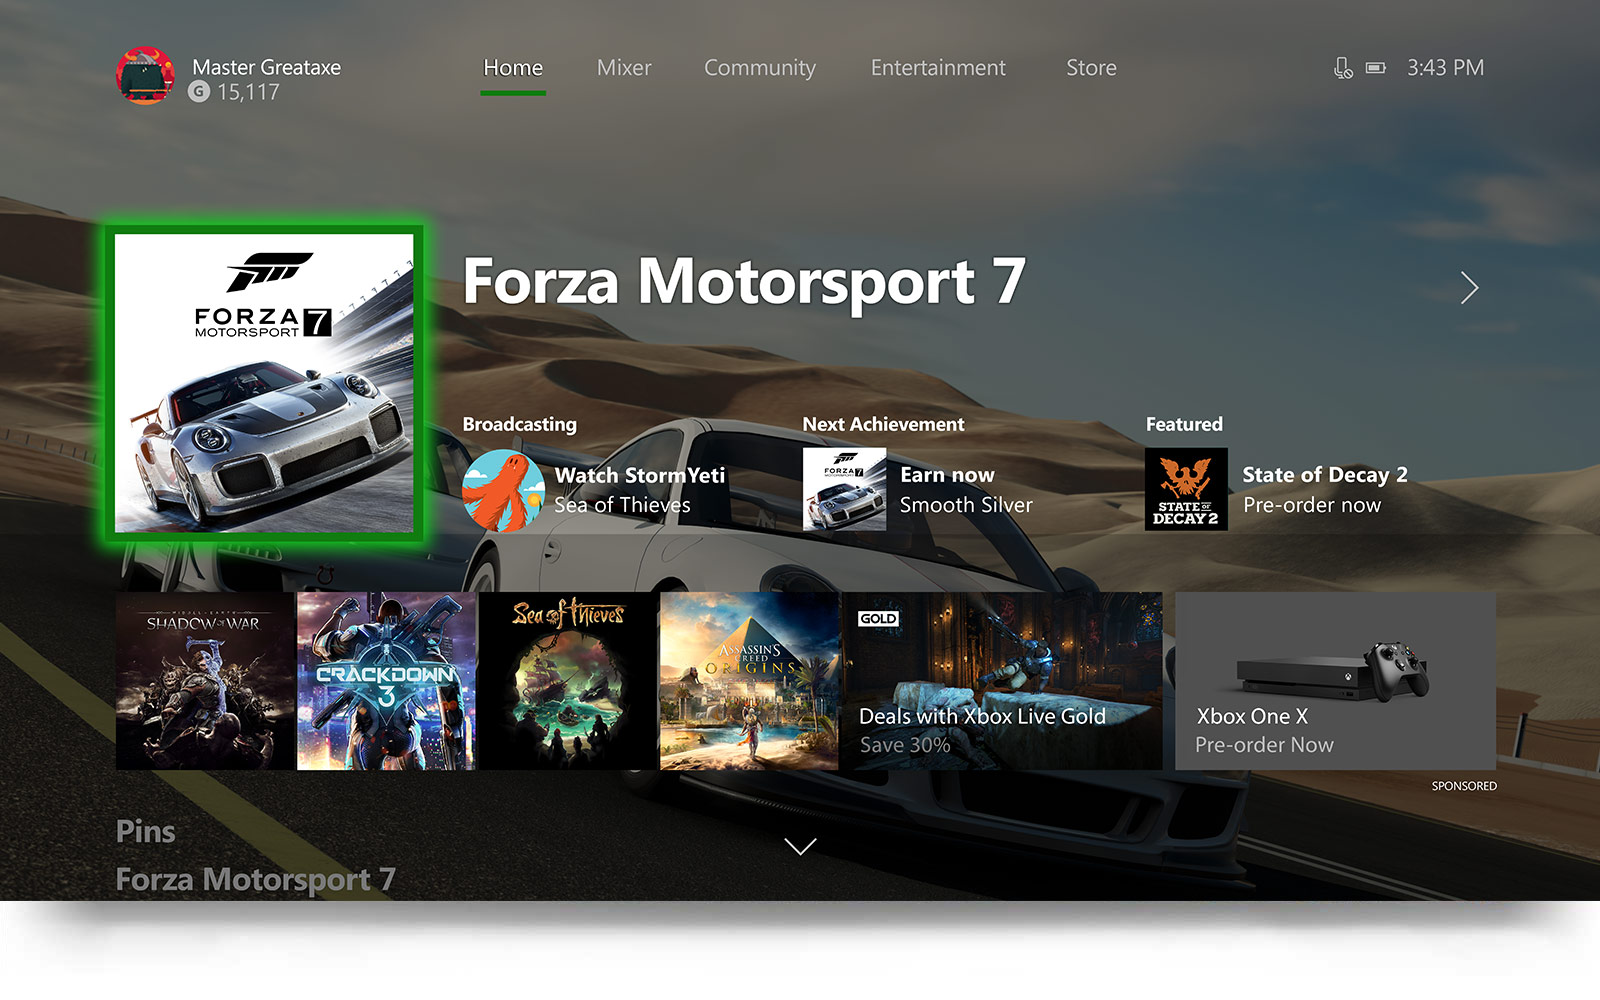 The new home screen for the Xbox dashboard